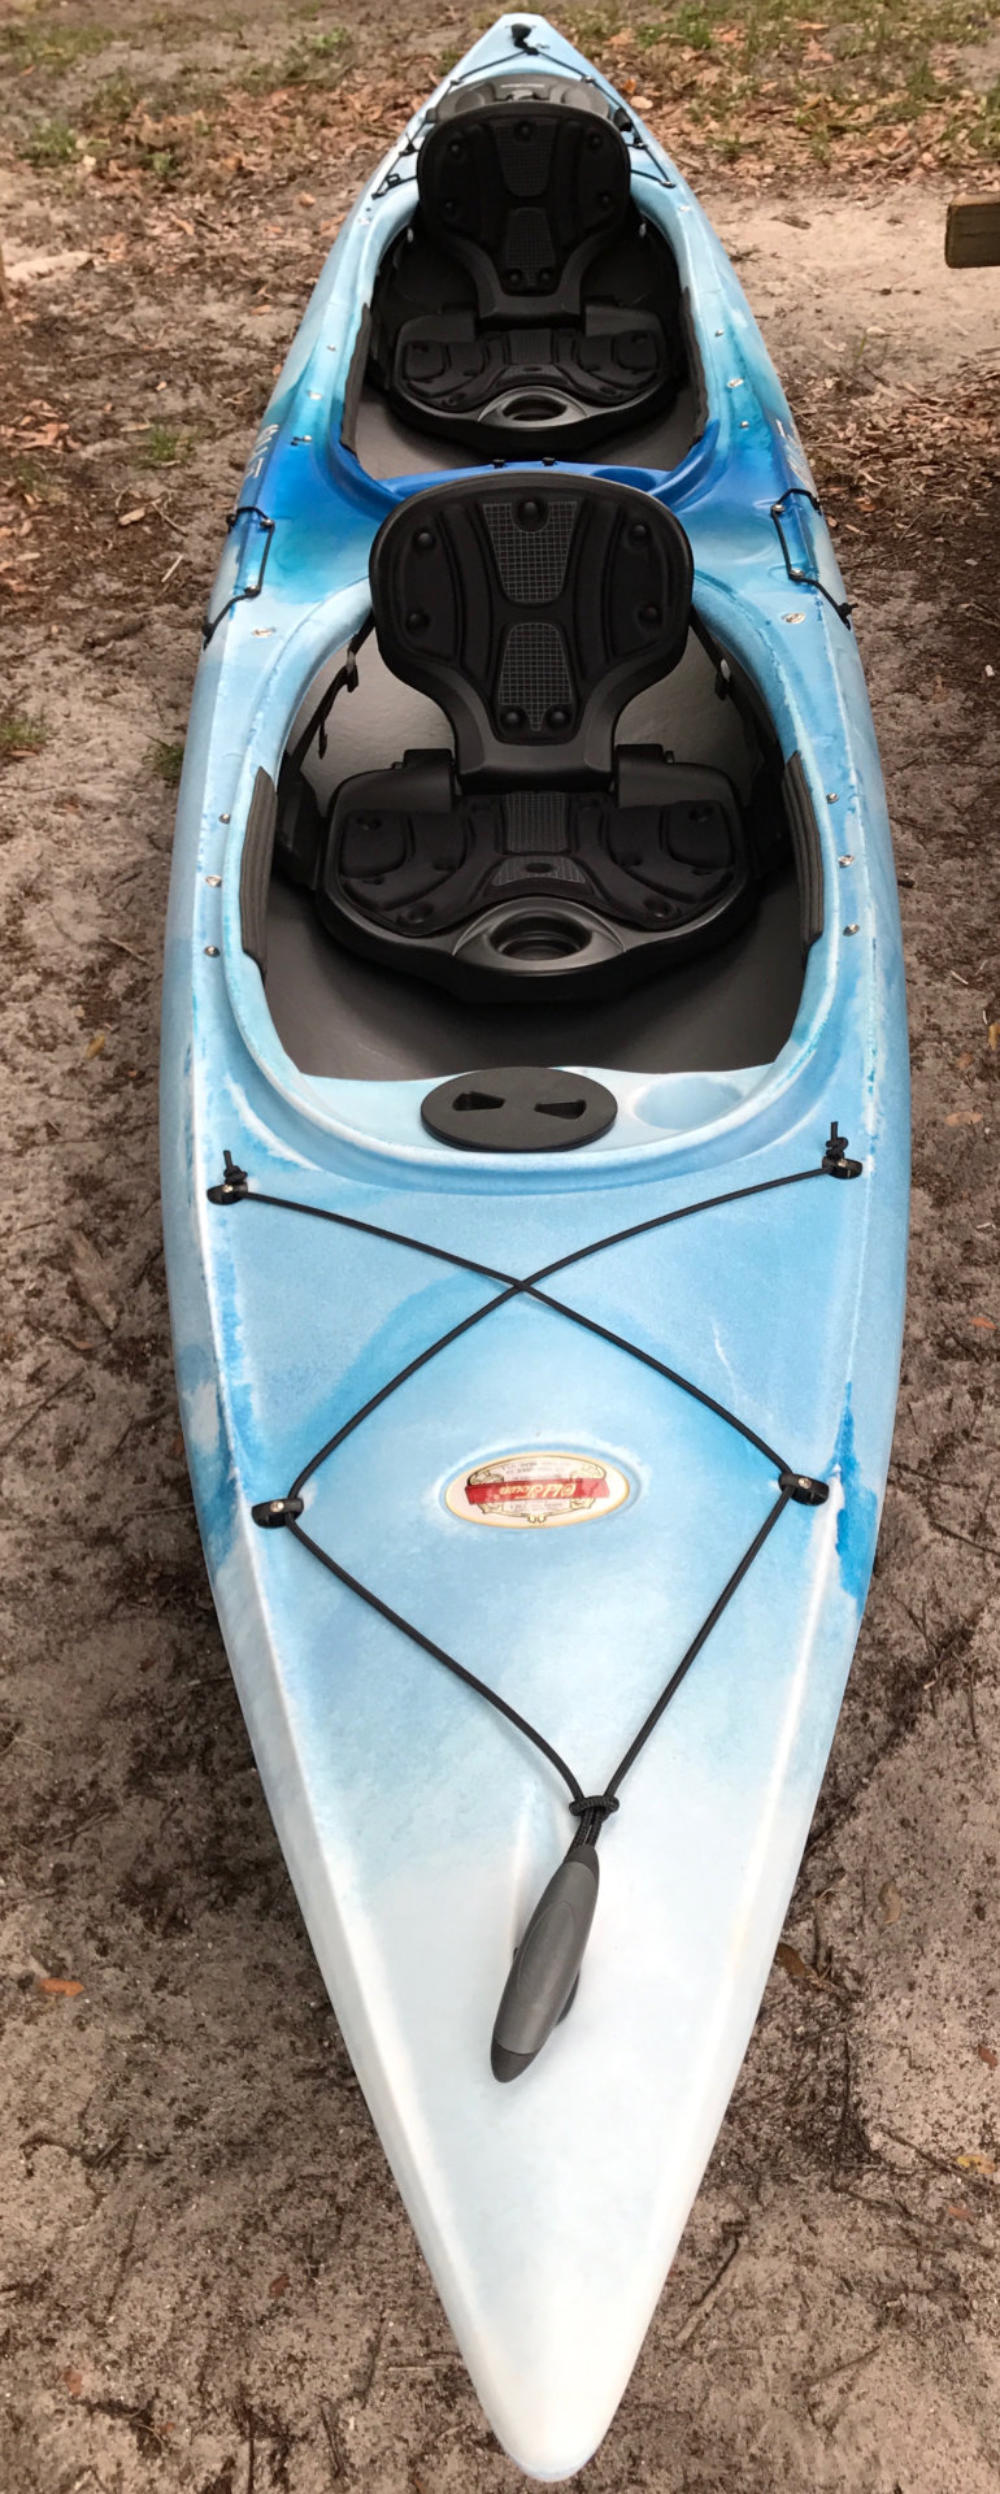 Rainbow River Paddleboard Rentals Stand Up Paddleboards